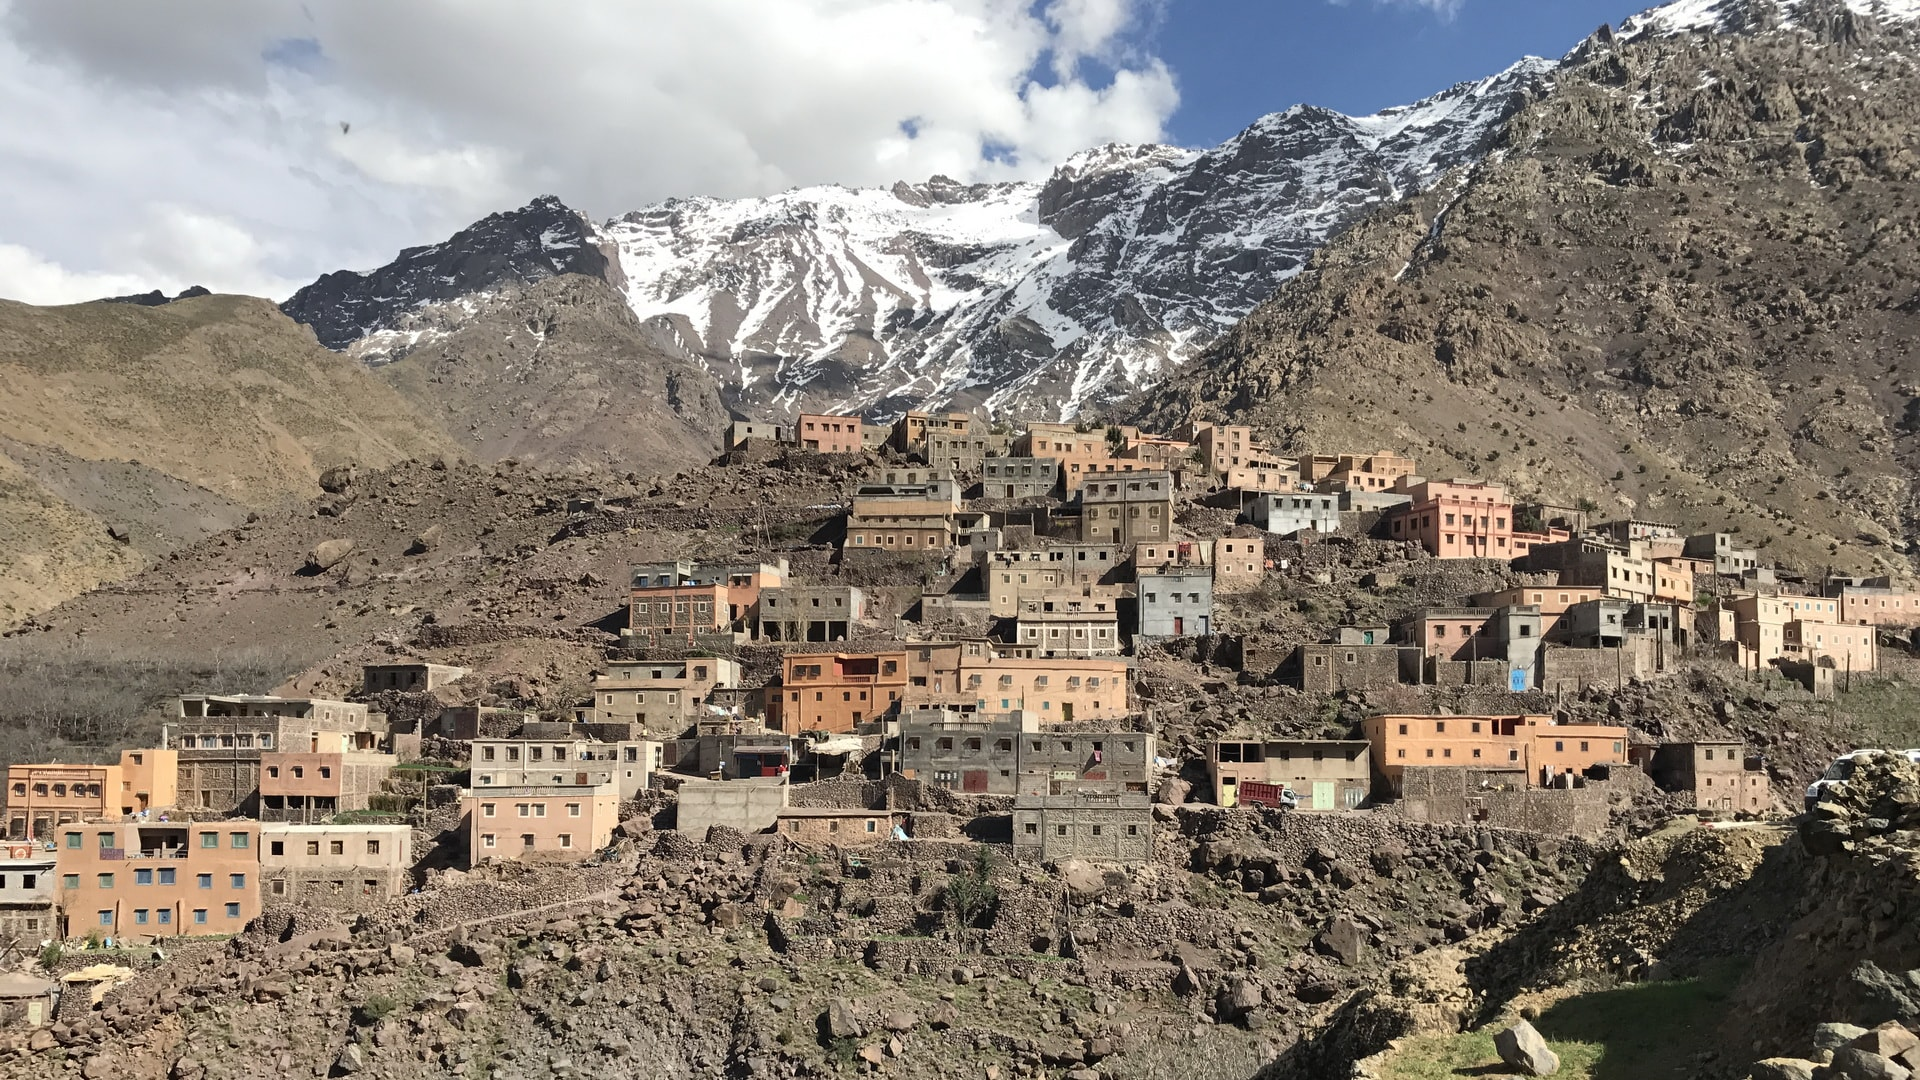 pathfinders treks - 5 day trek mt toubkal via oukaimeden